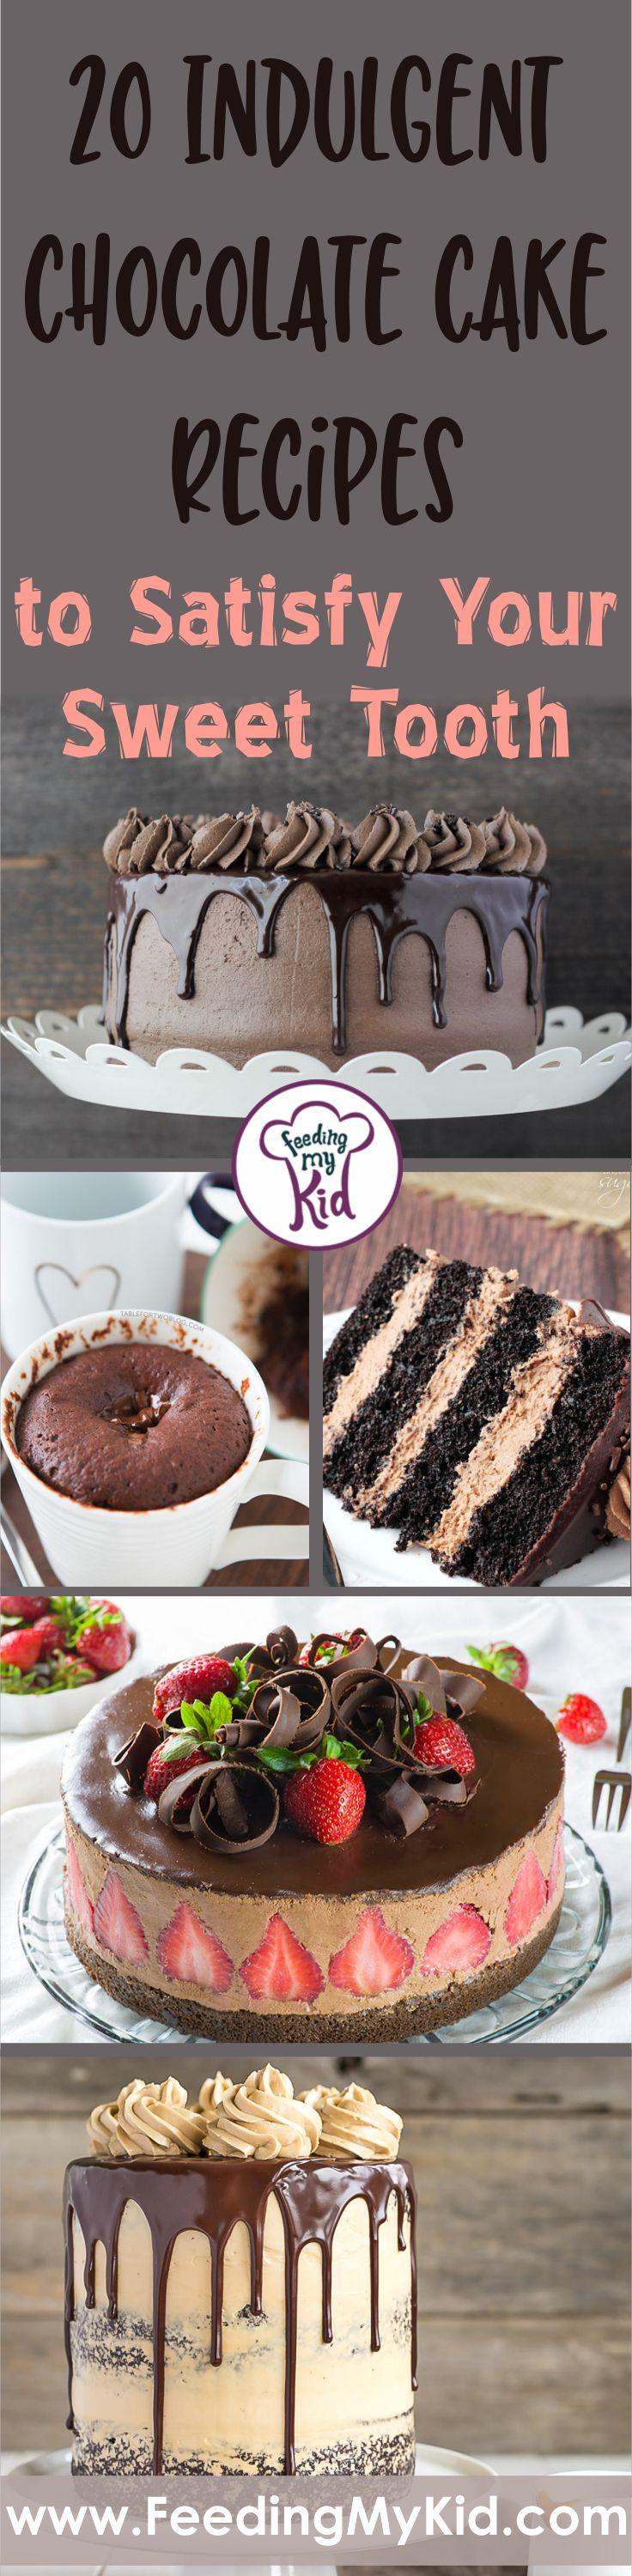 These chocolate cake recipe ideas are too good! If you have a sweet tooth for chocolate, these are for you! From fudgy to strawberry to lava cakes - yum!